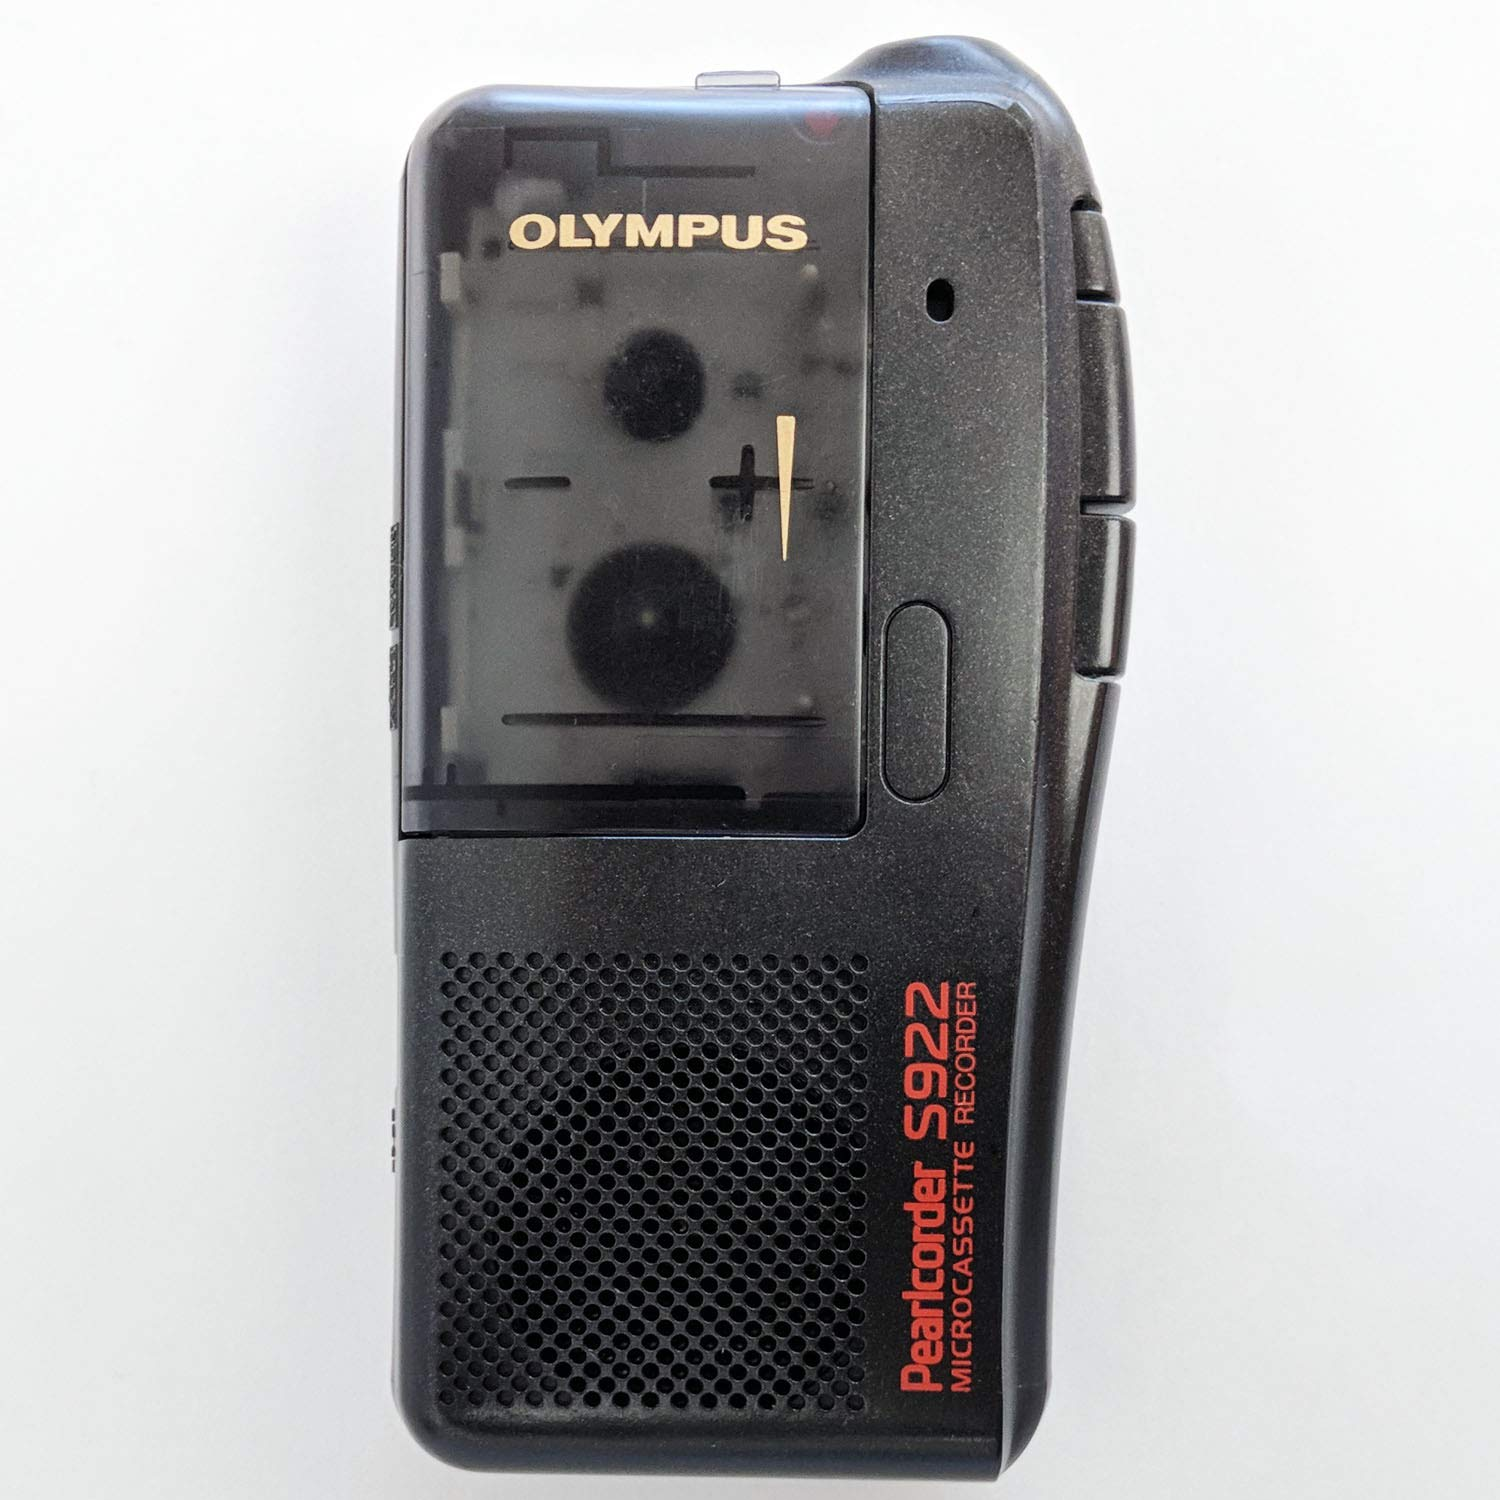 Olympus Pearlcorder S922 Microcassette Recorder